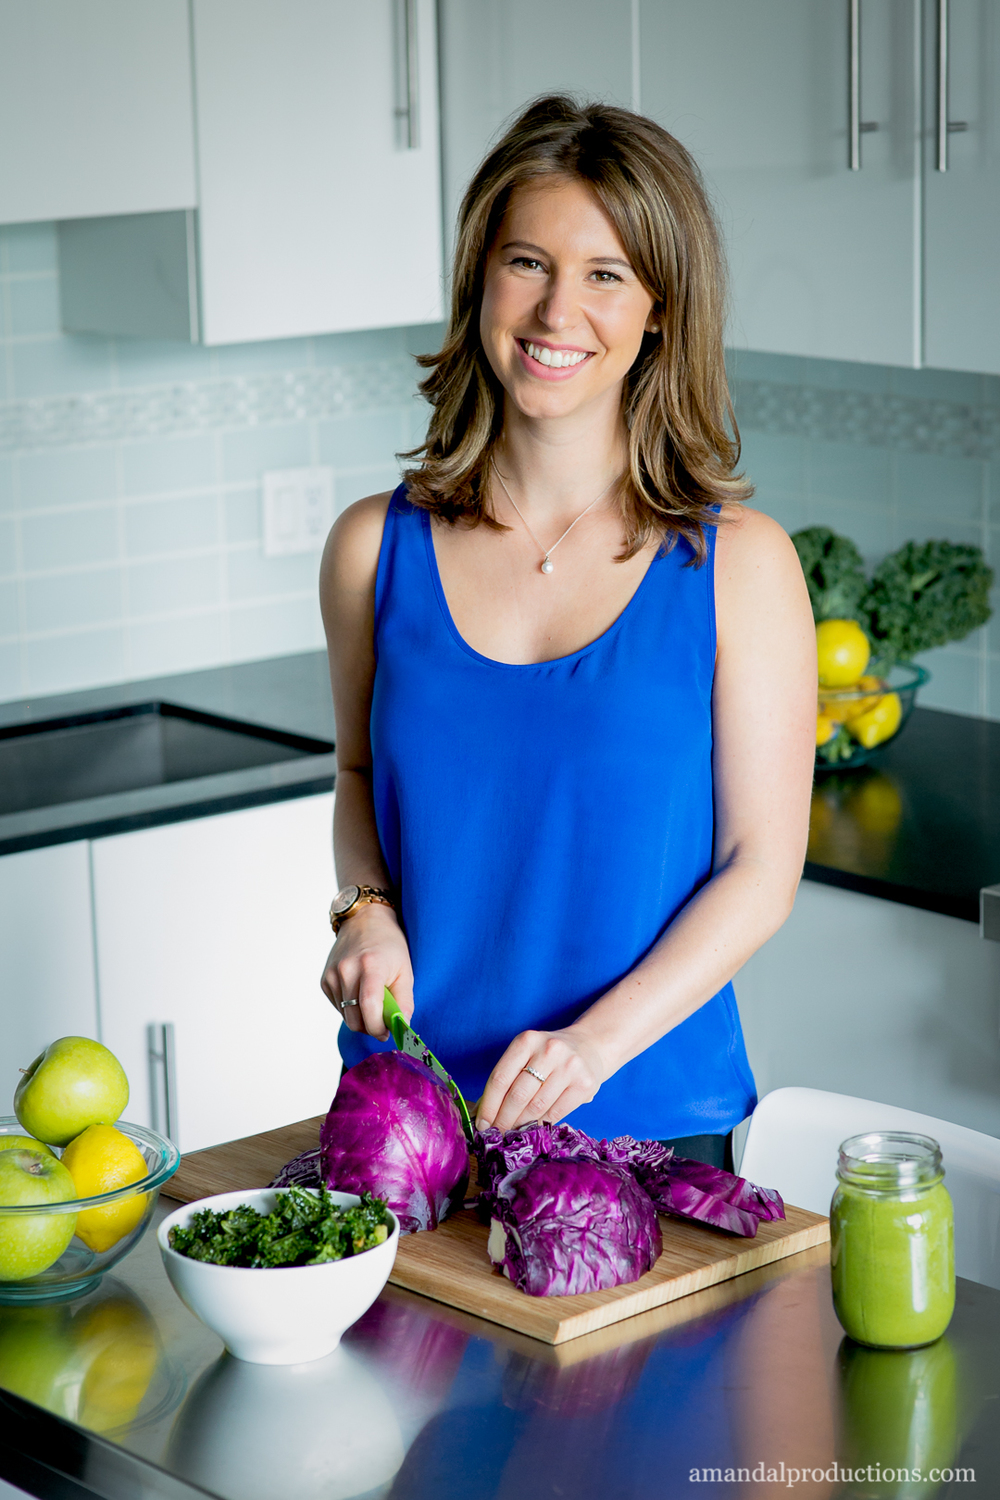 Mandy-Health-Nutritionist